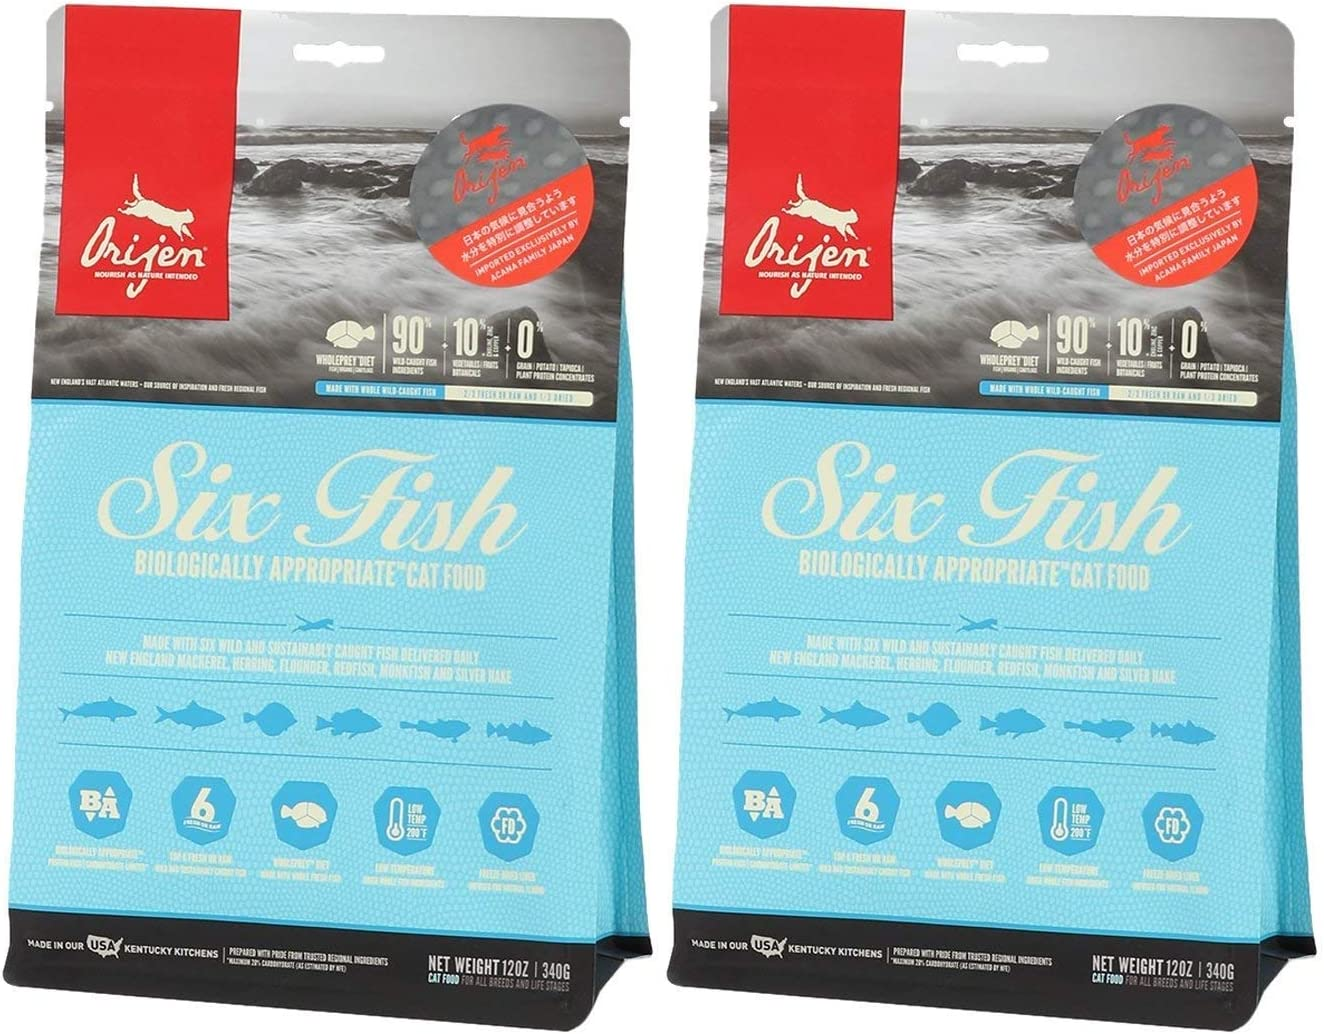 Orijen 2 Pack of 6 Fish Biologically Appropriate Food for Cats, 12 Ounces Per Pack